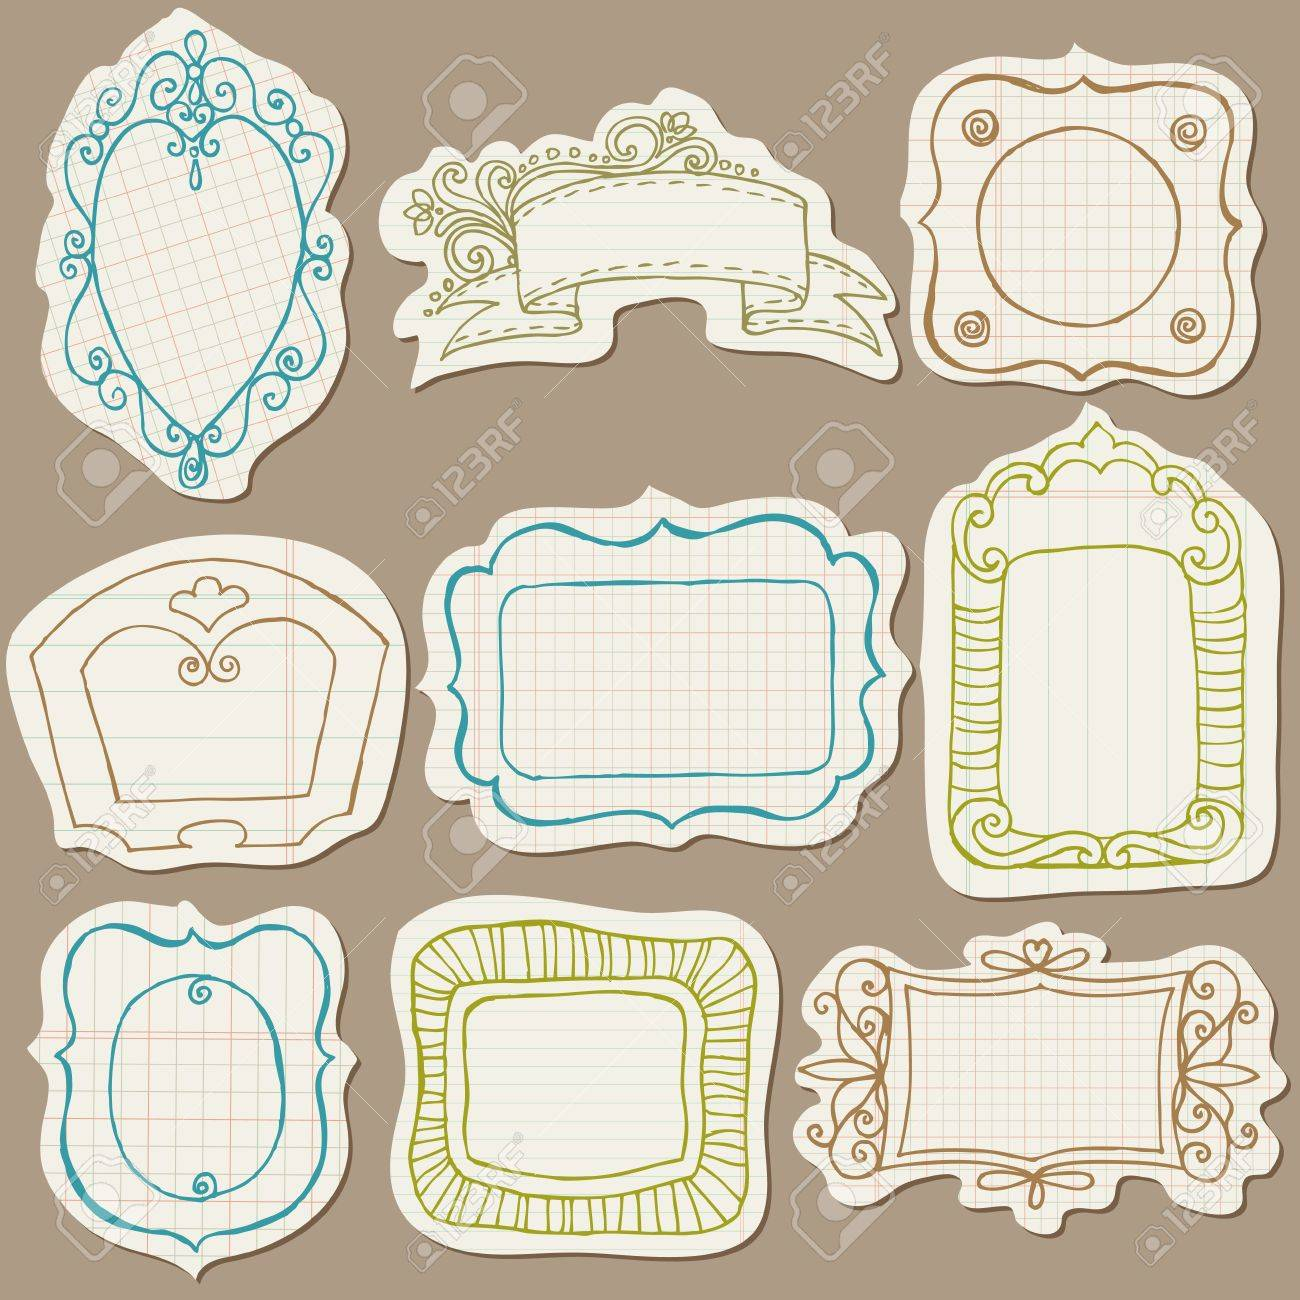 Set of Doodle Frames on torn paper - with Flower Elements Stock Vector - 12185898